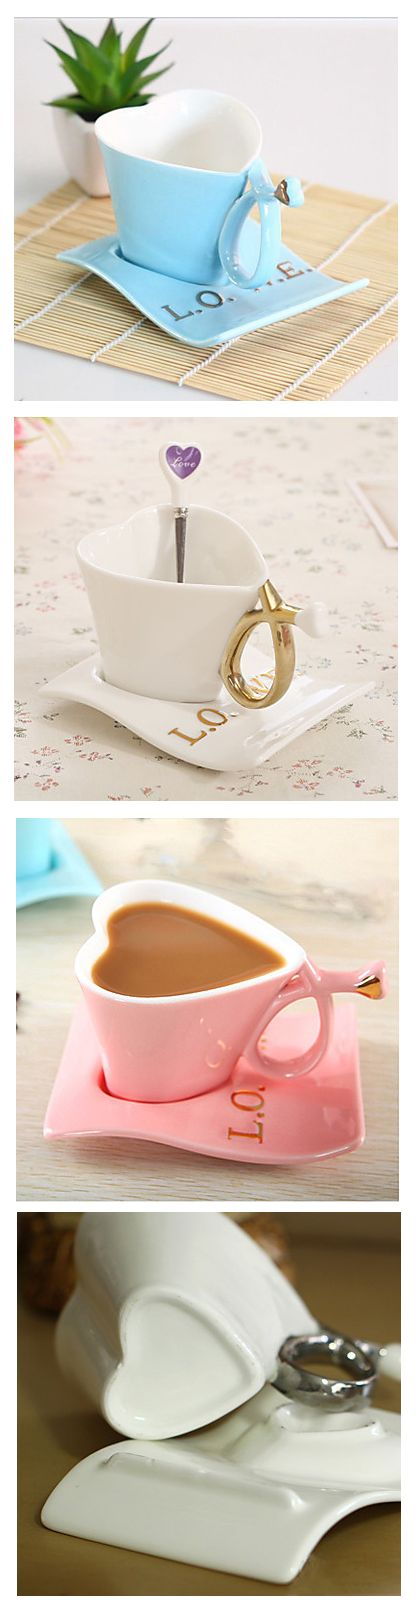 What a lovely teacup  <3 Isn't it a good idea to give your beloved this sweet present or to have it for yourself?  Only now for $11.99